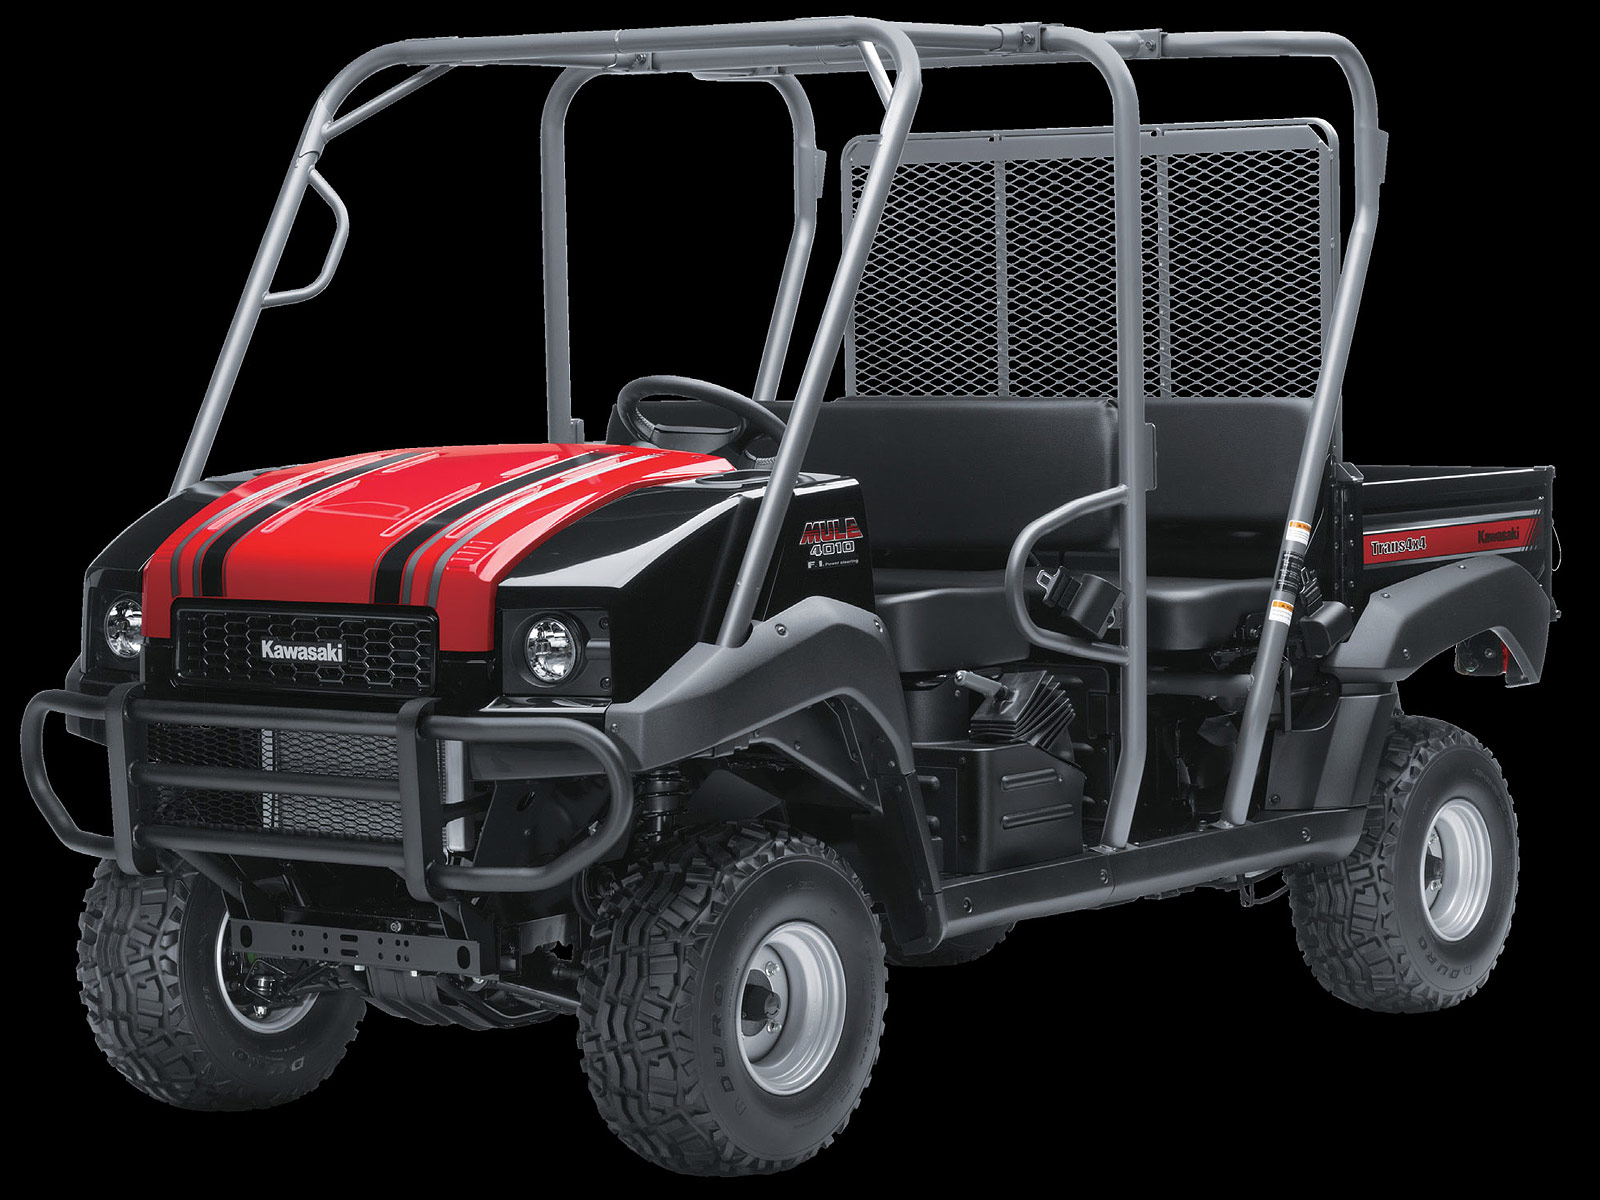 Mule 610 Bumper : Kawasaki mule brush guard motorcycle pictures